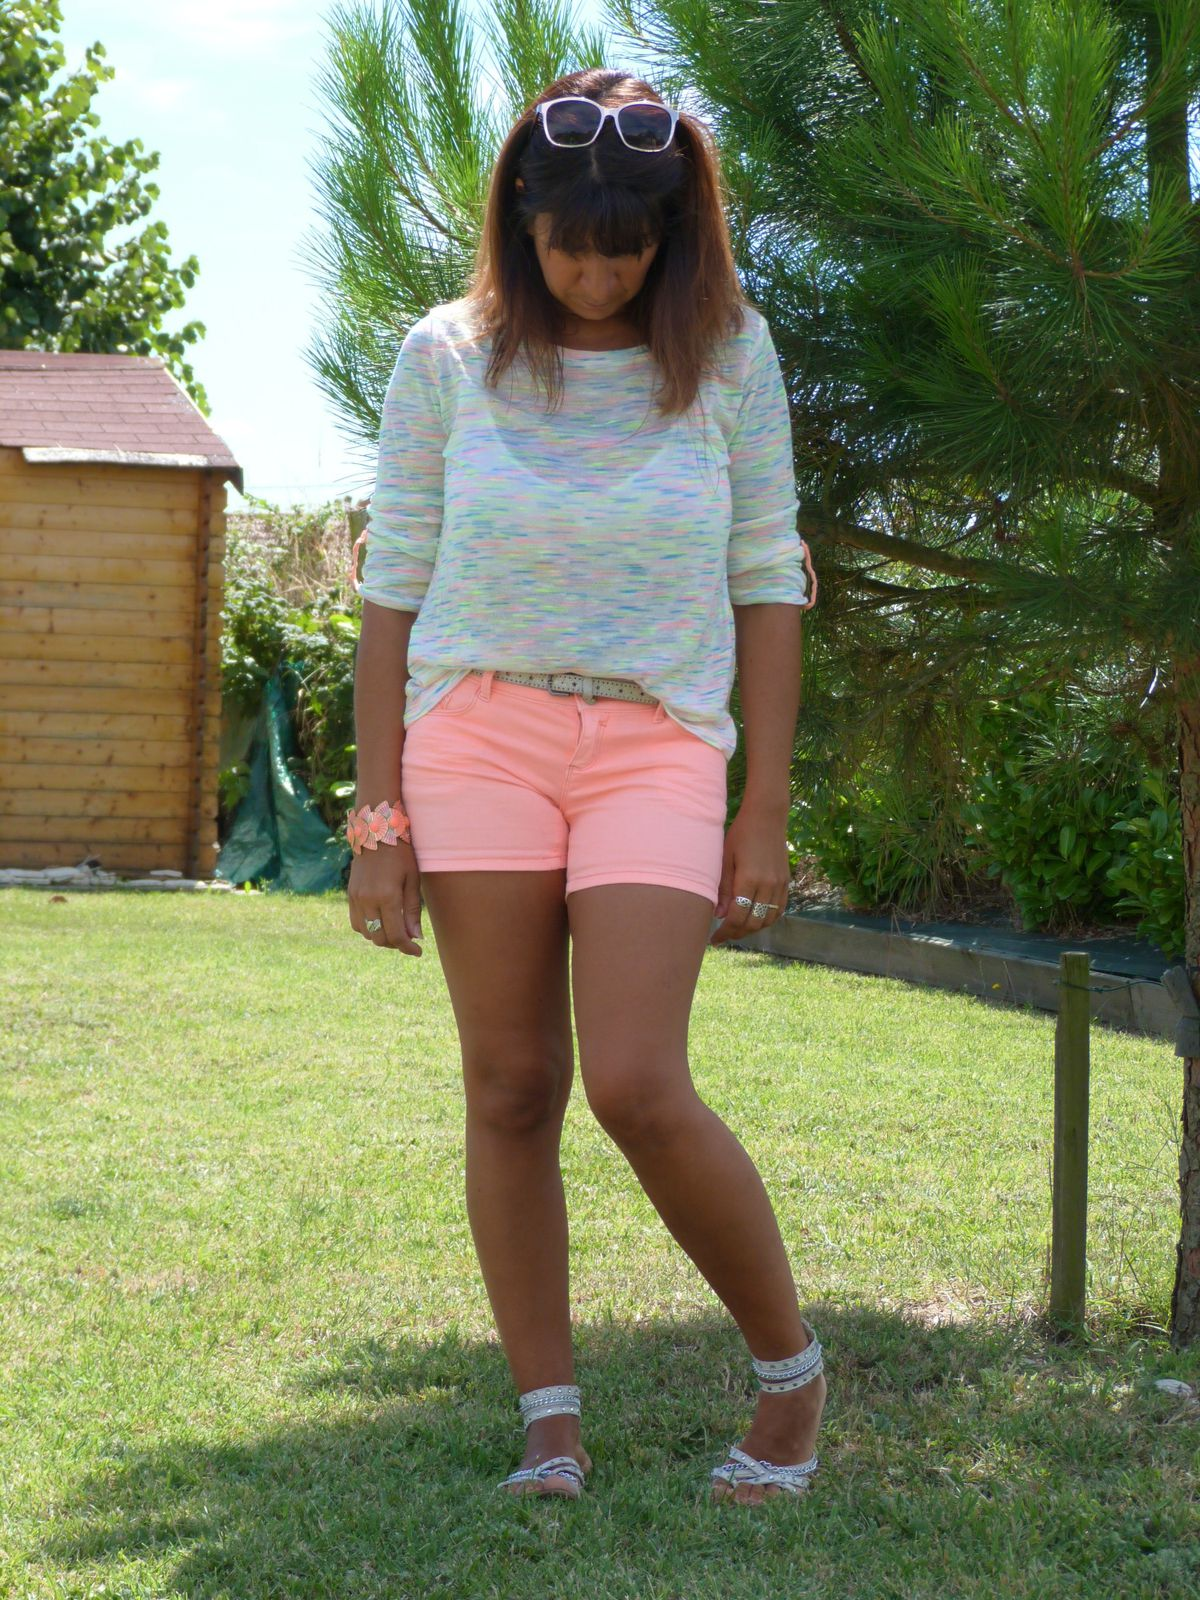 tee shirt : SUITE BLANCO  short : PROMOD   chaussures : GEMO.